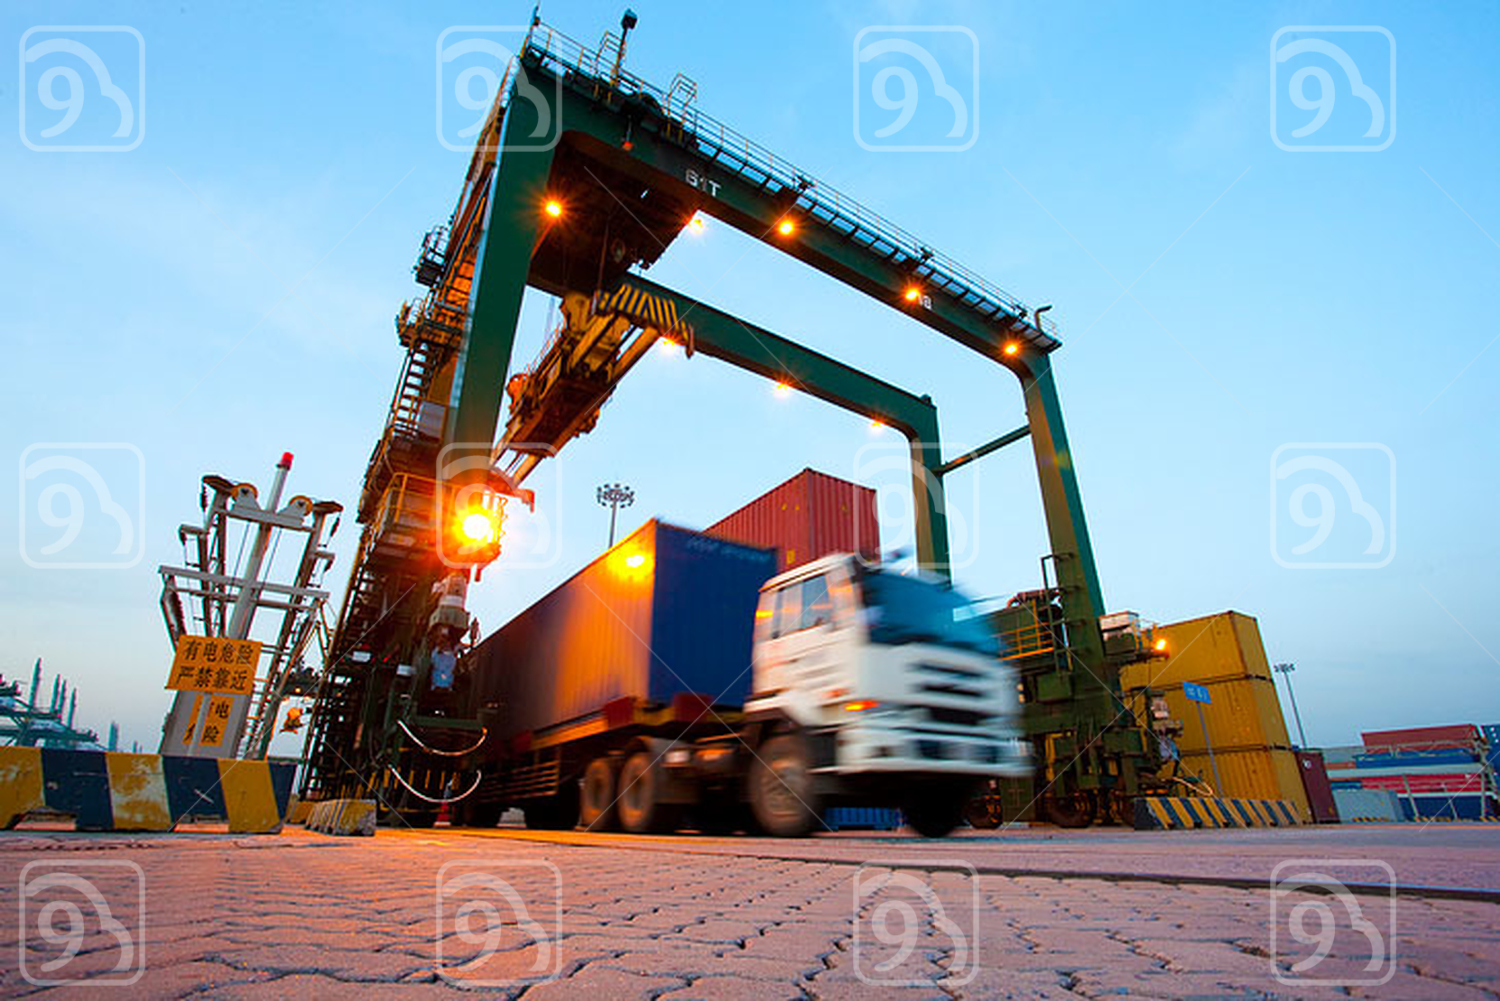 Blurred motion of truck with cargo containers and cranes in a shipping port